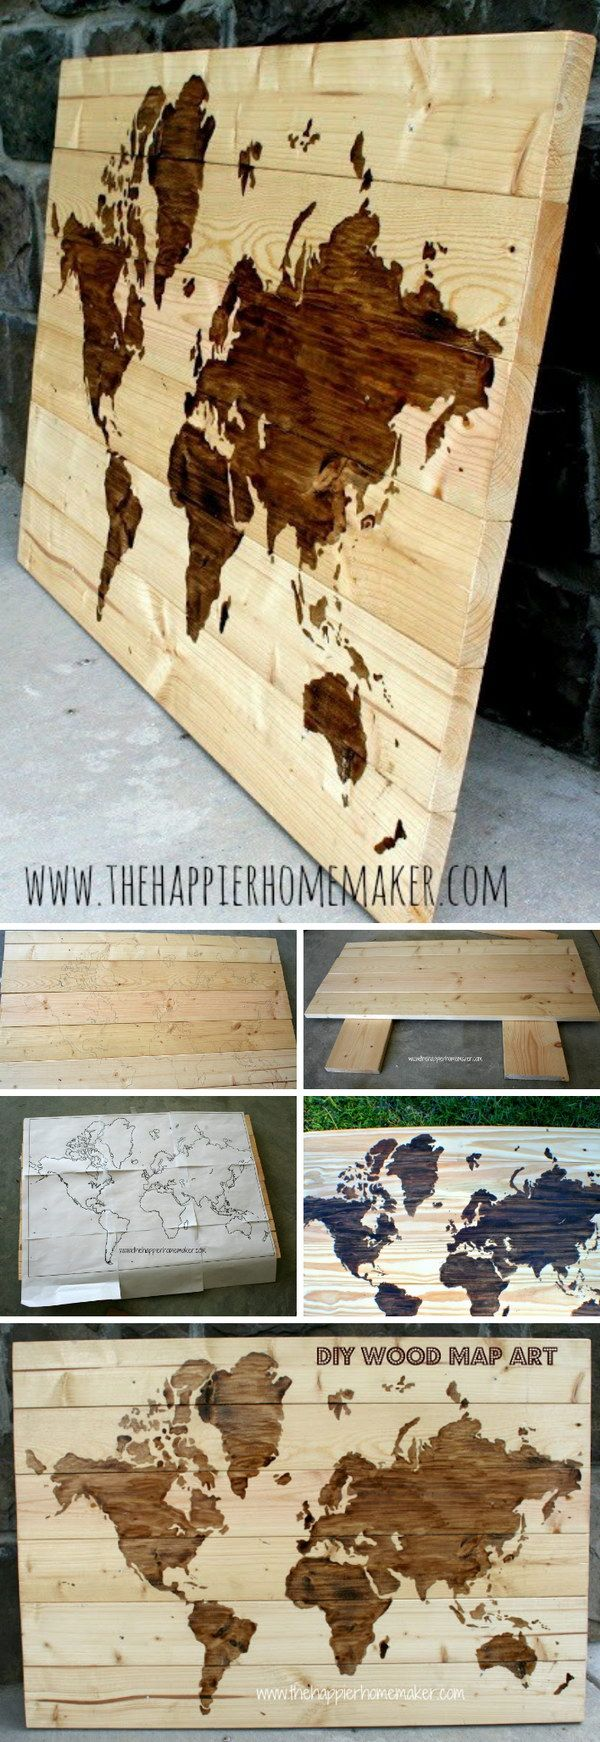 20 Wood Stain Ideas and Projects